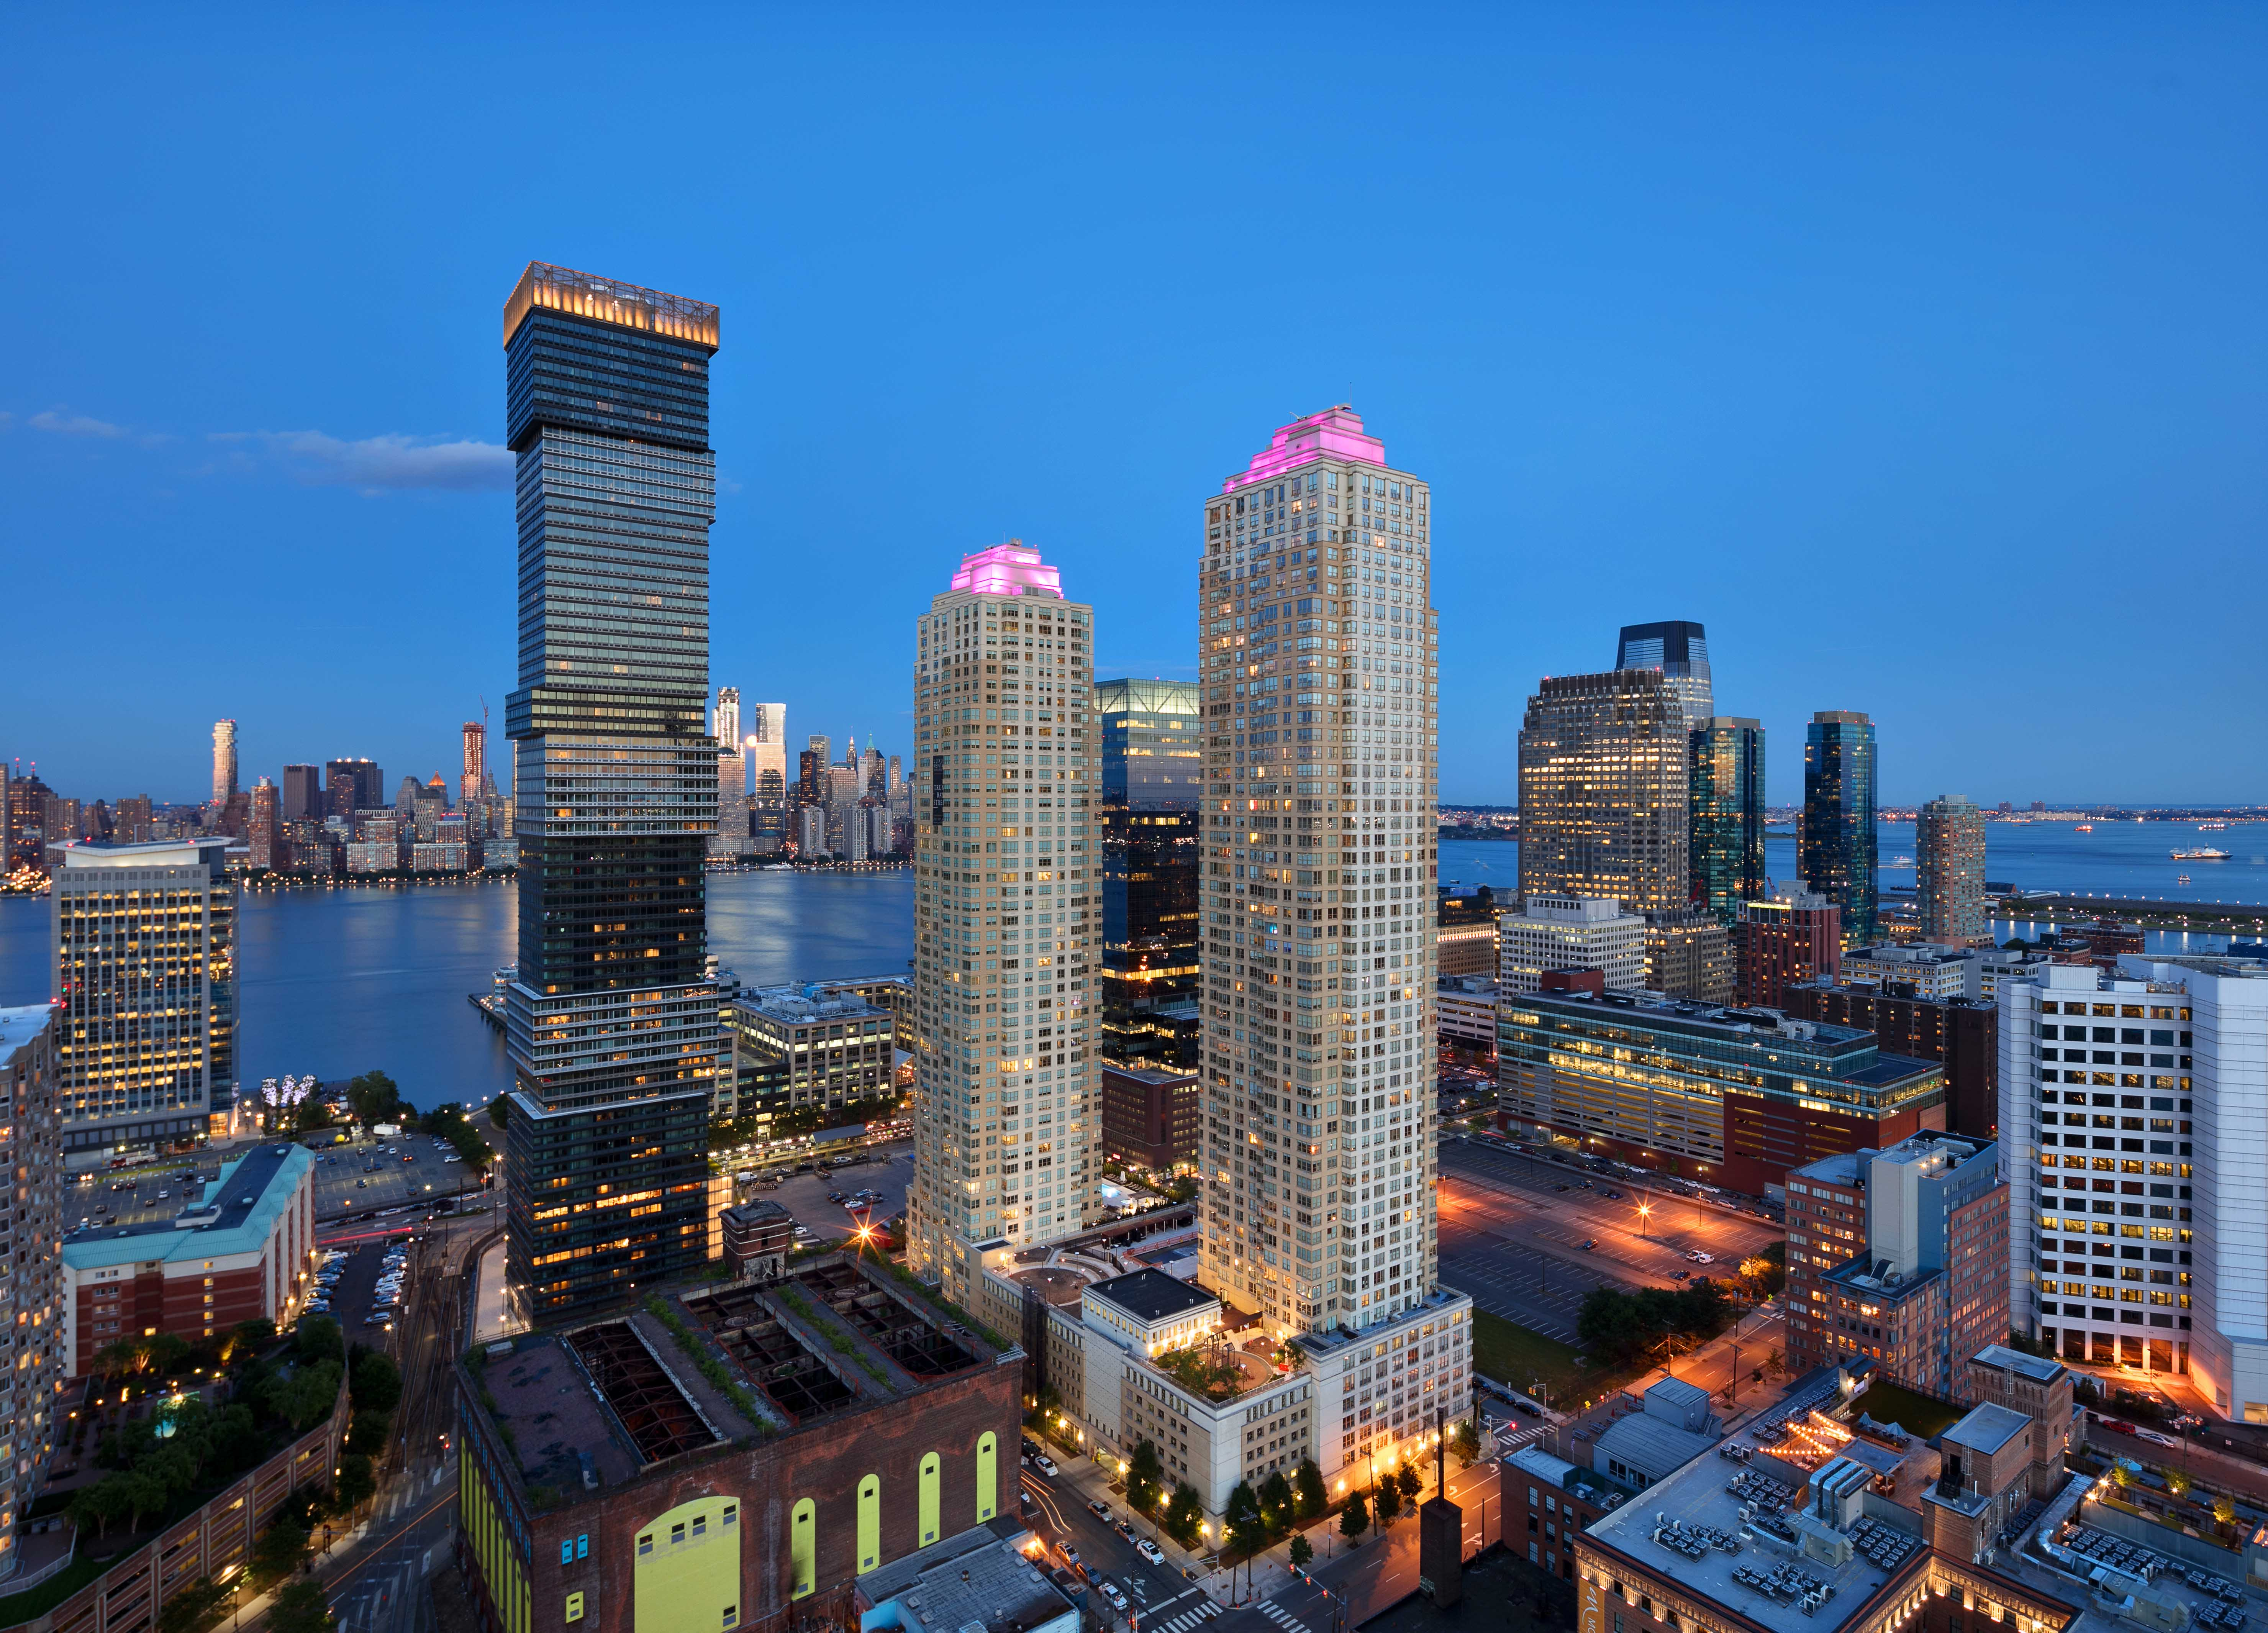 20 Best Apartments in The Waterfront, Jersey City, NJ